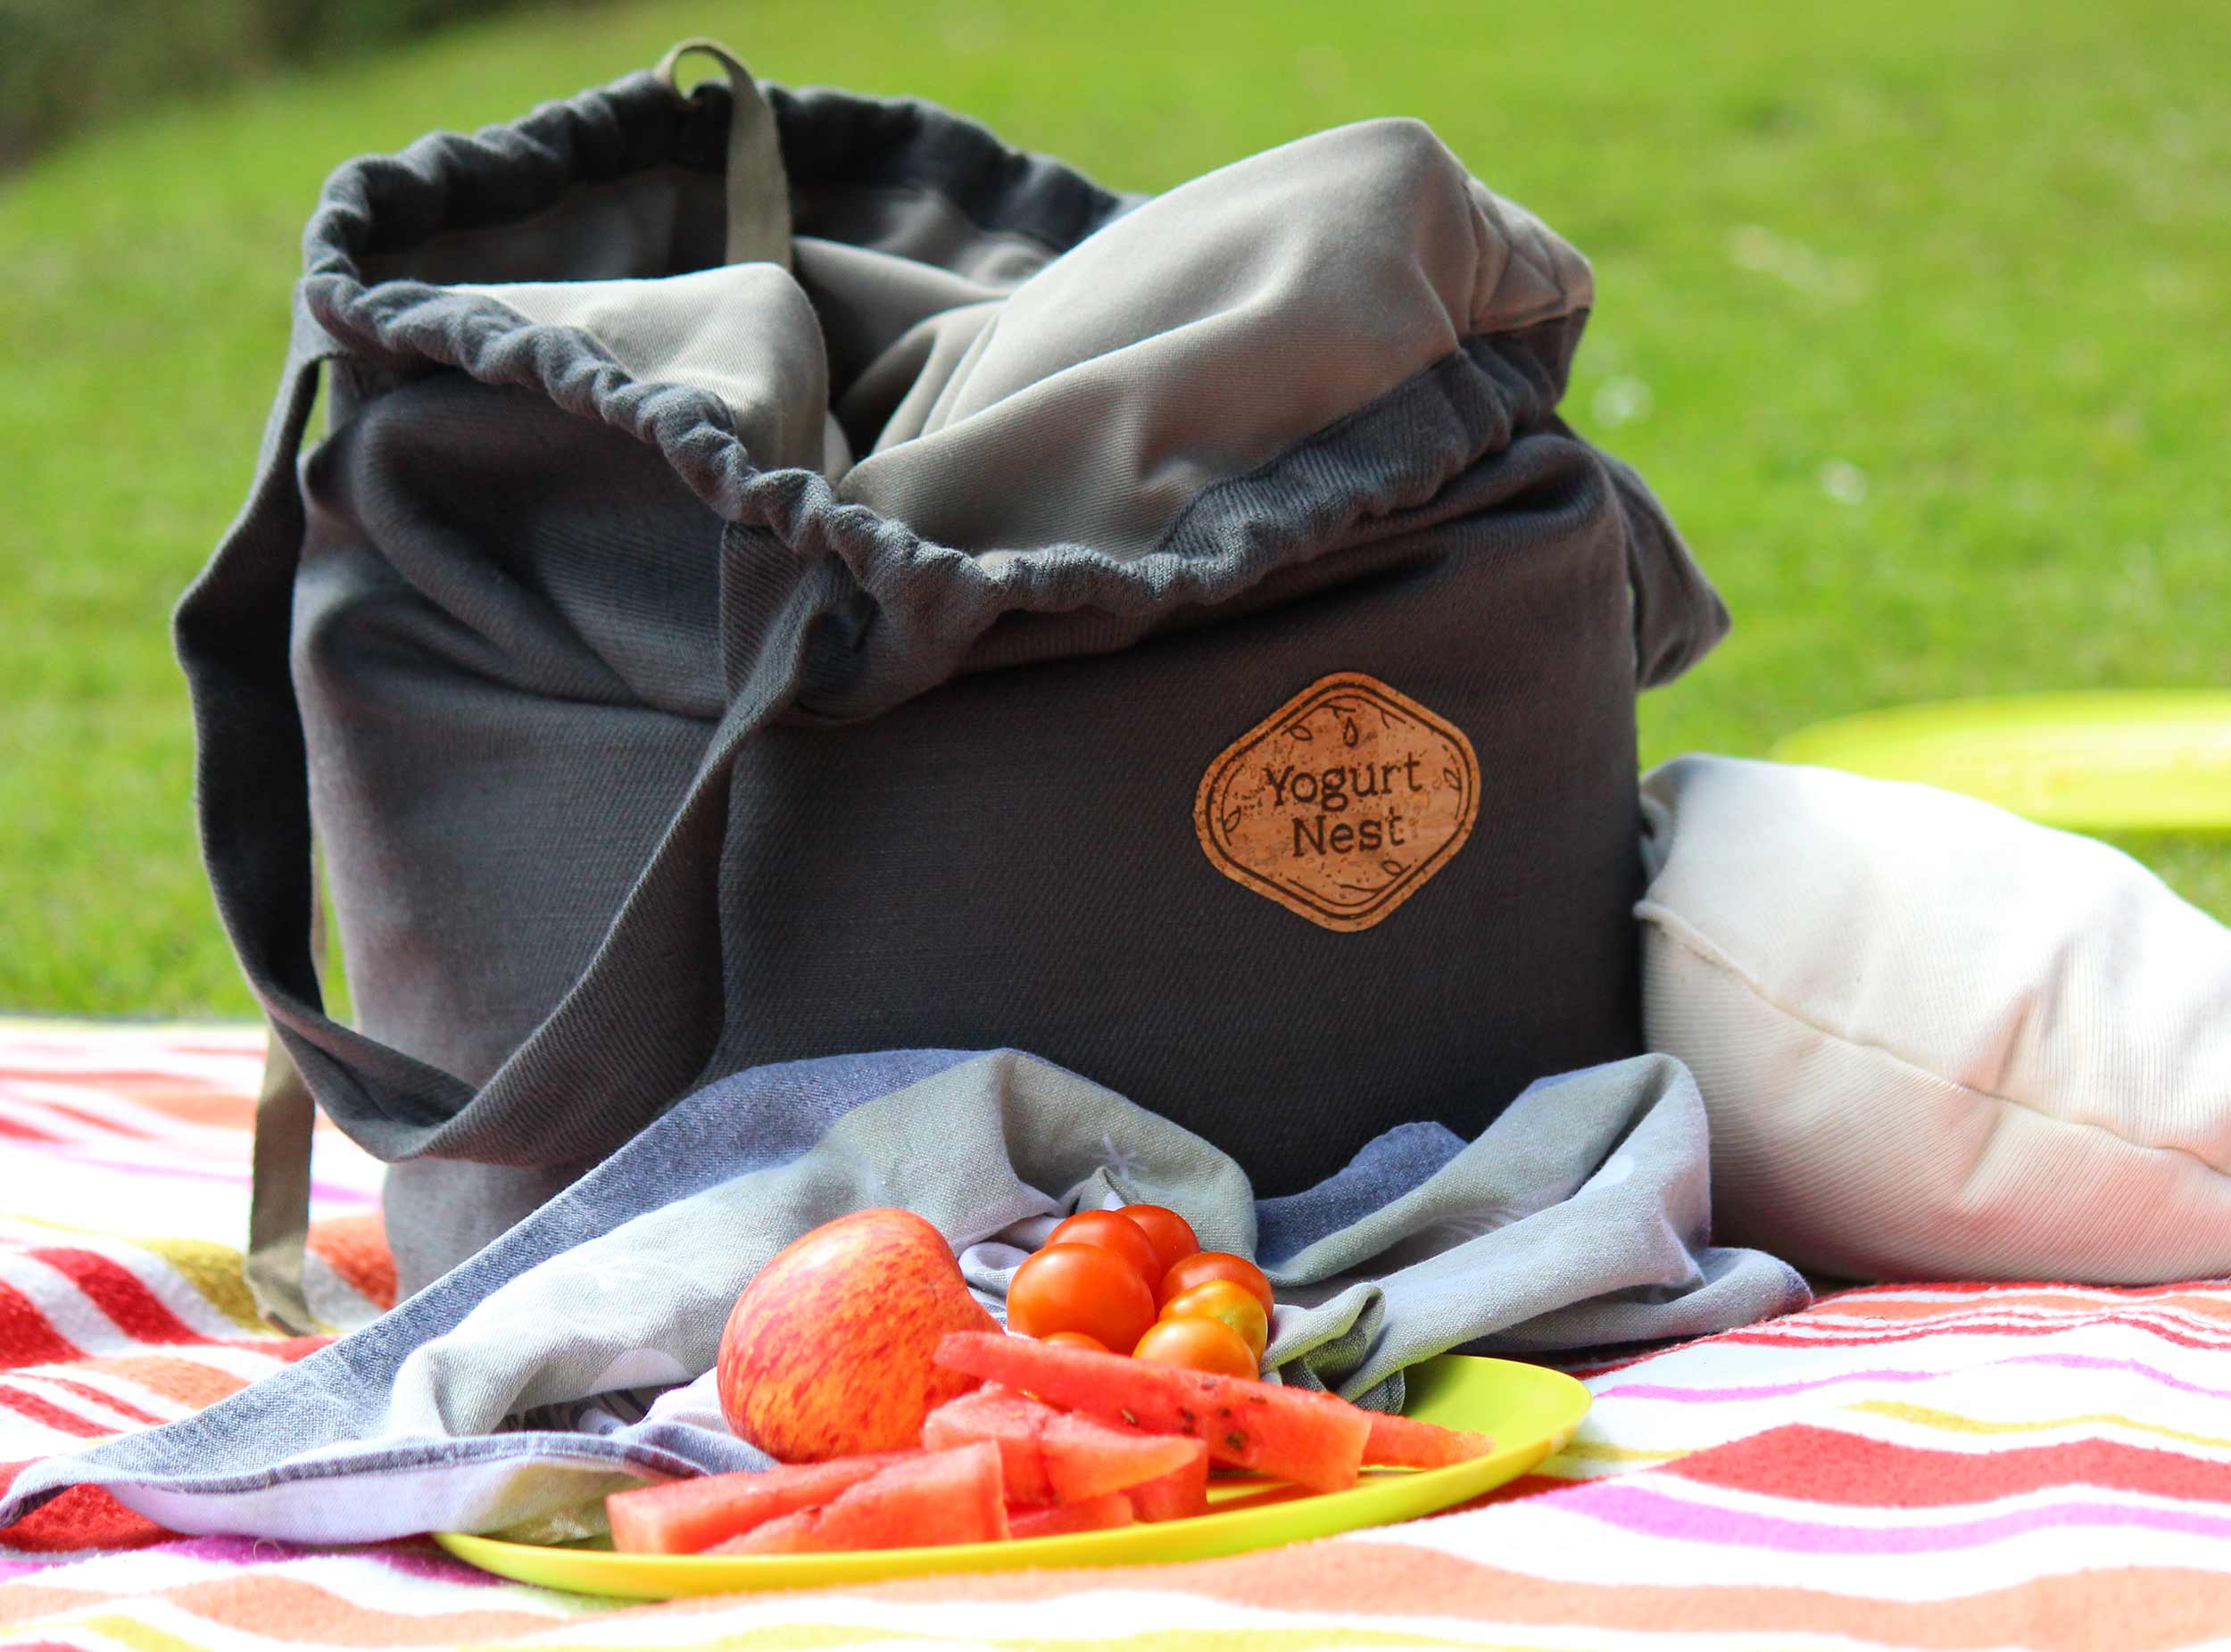 Lichen Traveller YogurtNest with handles and picnic by a river